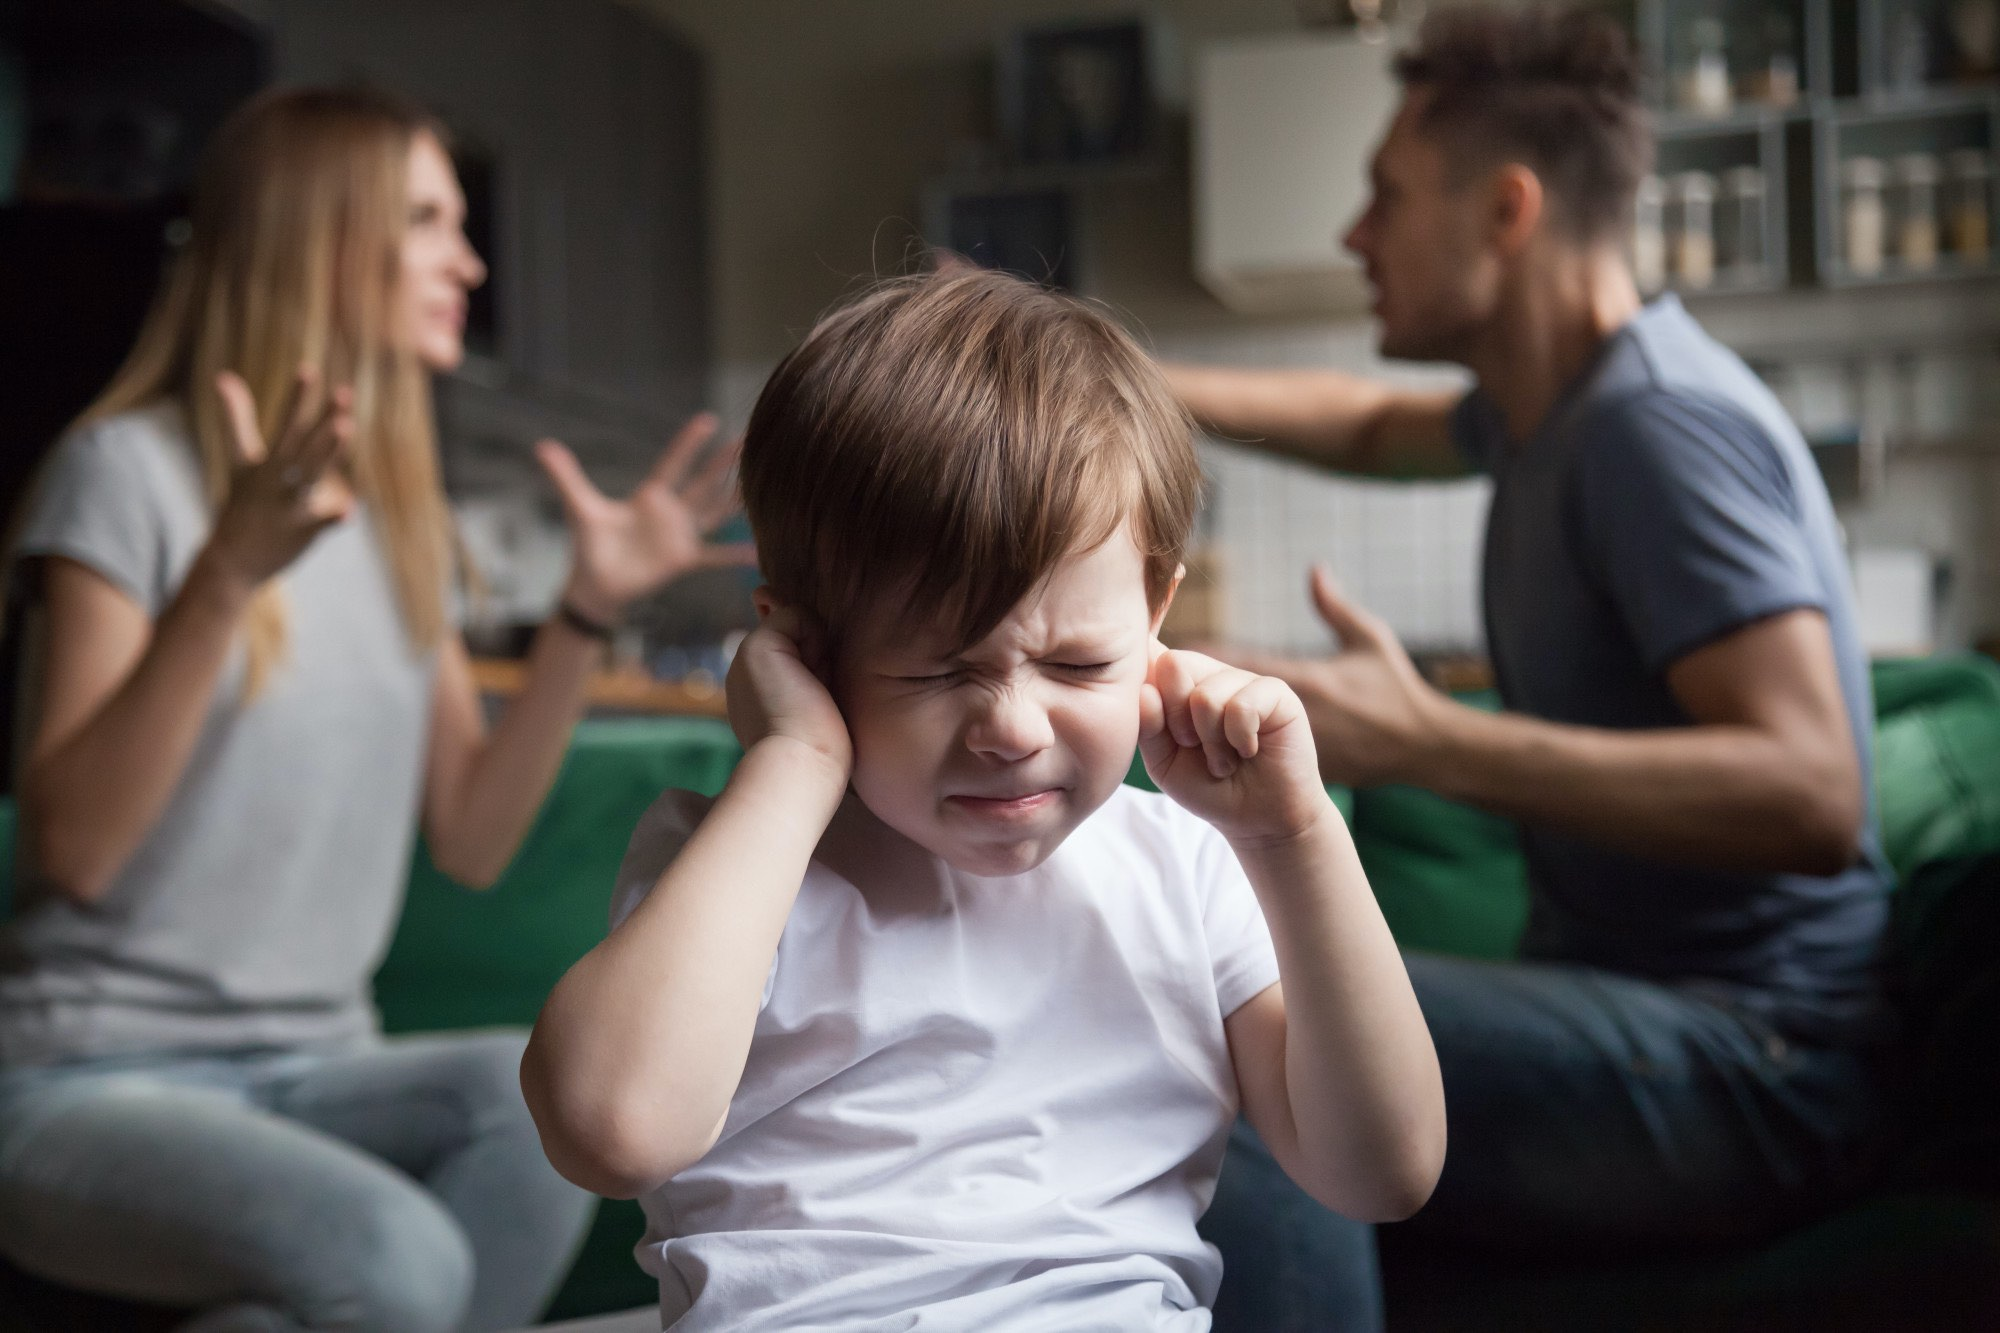 How Can I Make Joint Child Custody Work for Me and My Family?